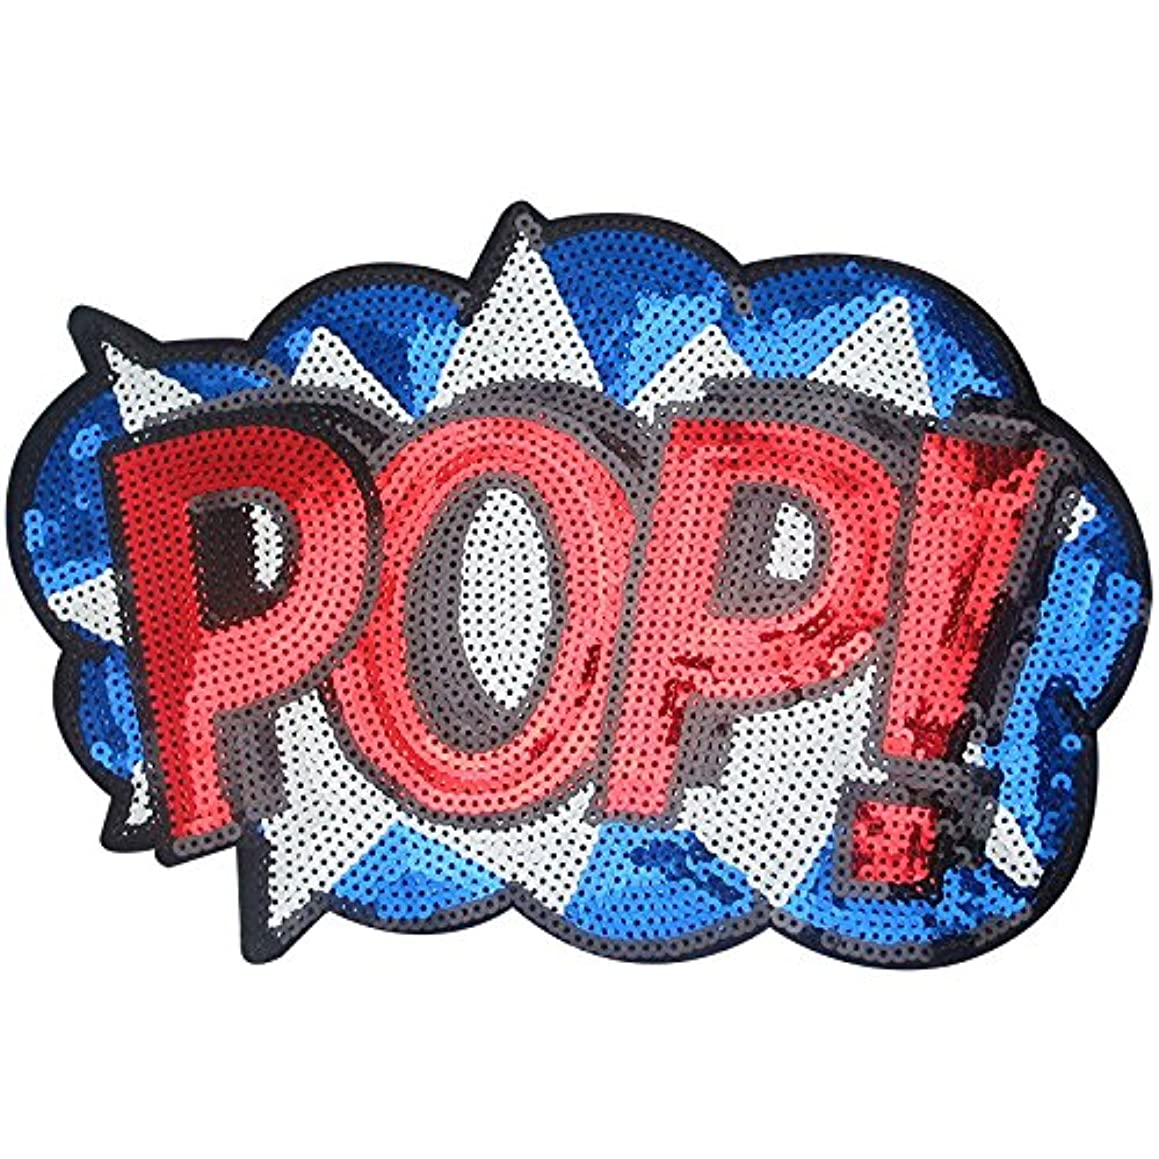 Dandan DIY Big Letter POP Embroidered Patch with Sequins Sew Patch Applique Clothes Curtain Sewing Flowers Applique Home Wedding Party Decoration DIY Accessory (Letter POP-2)